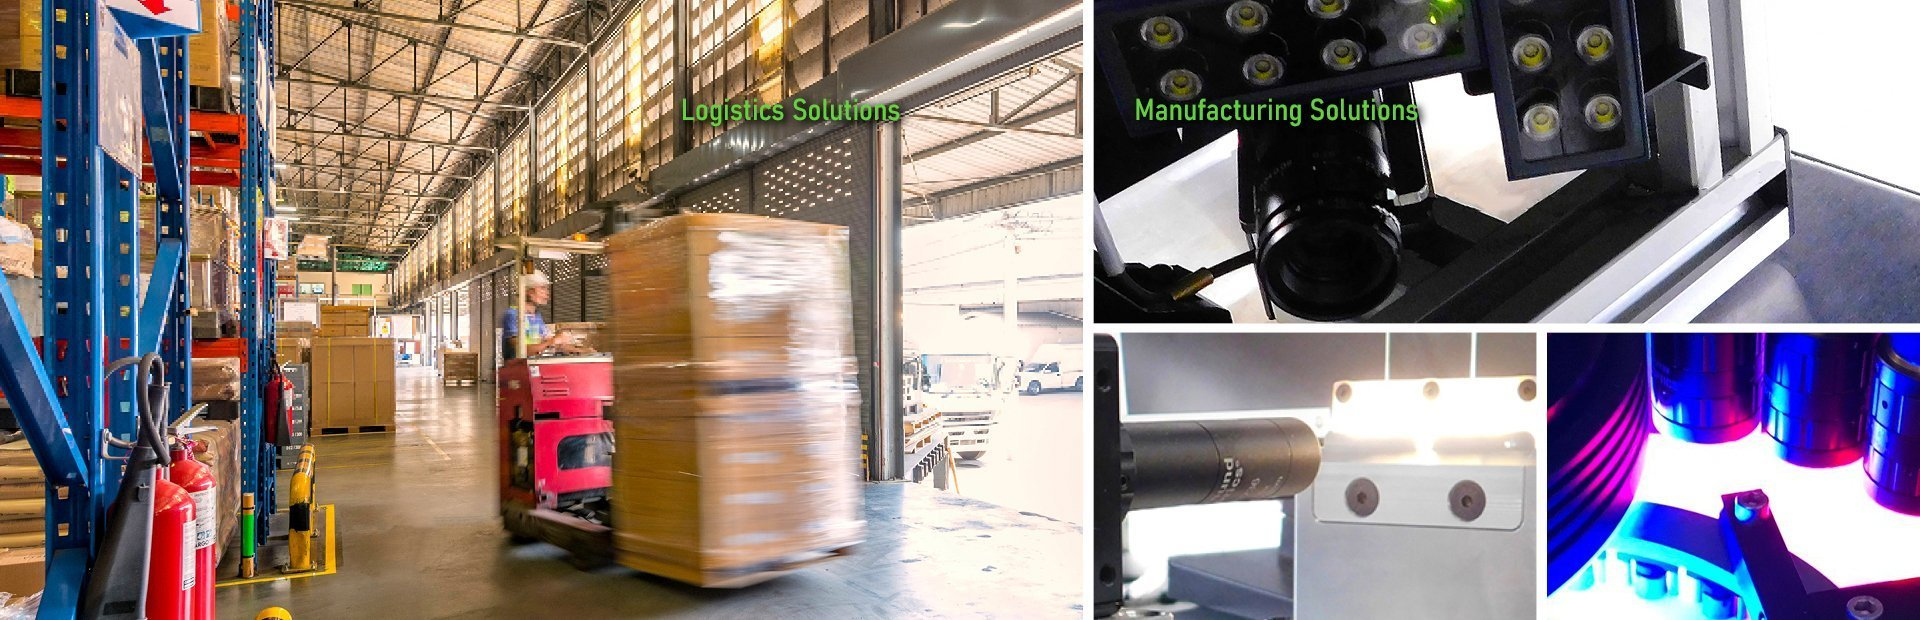 machine vision solutions for manufacturing and logistics